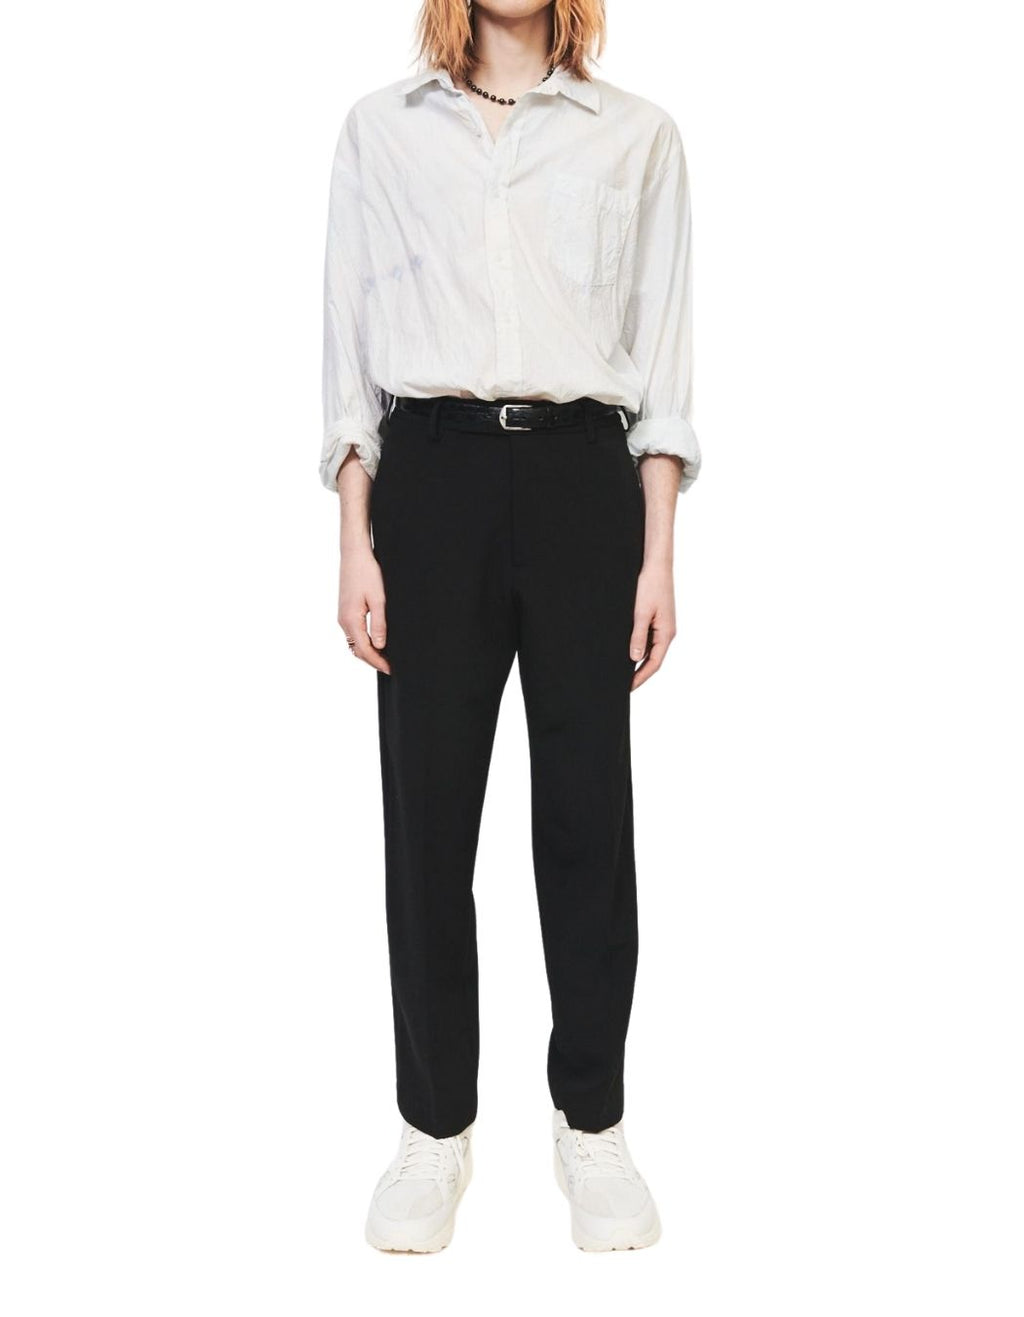 Black Suiting Flat Front Pant